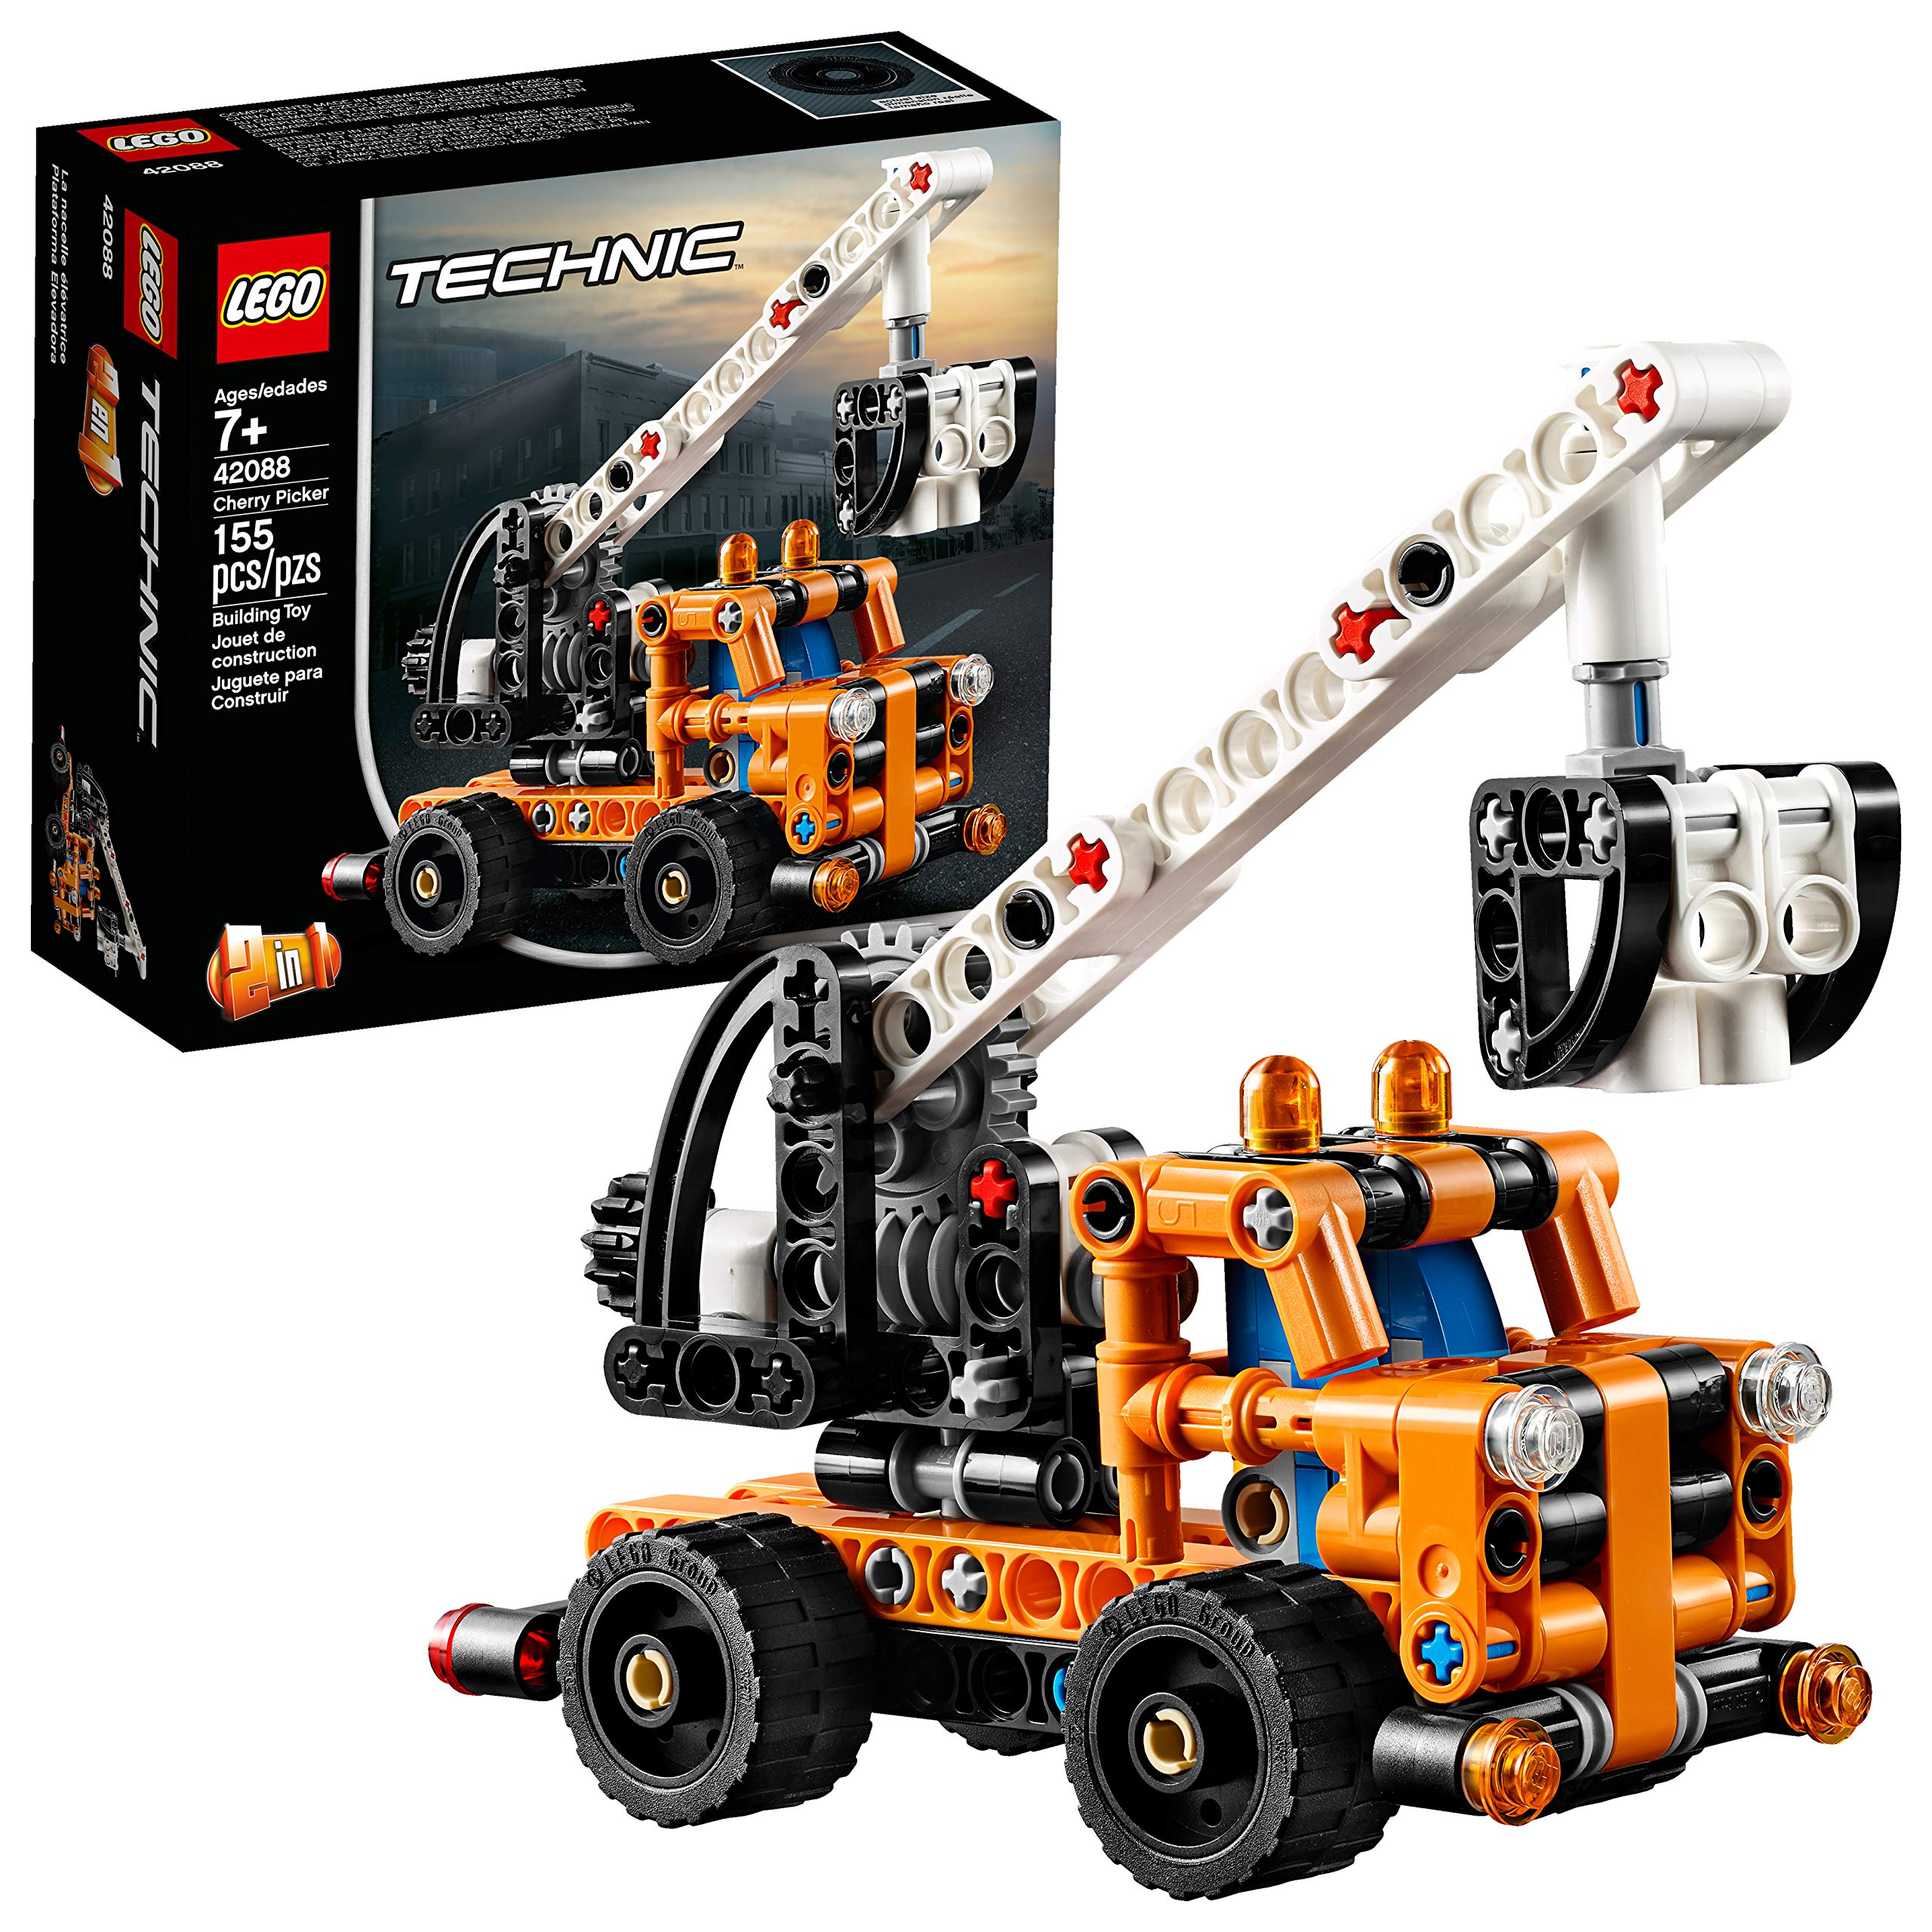 lego technic cherry picker 42088 building kit new 2019. Black Bedroom Furniture Sets. Home Design Ideas